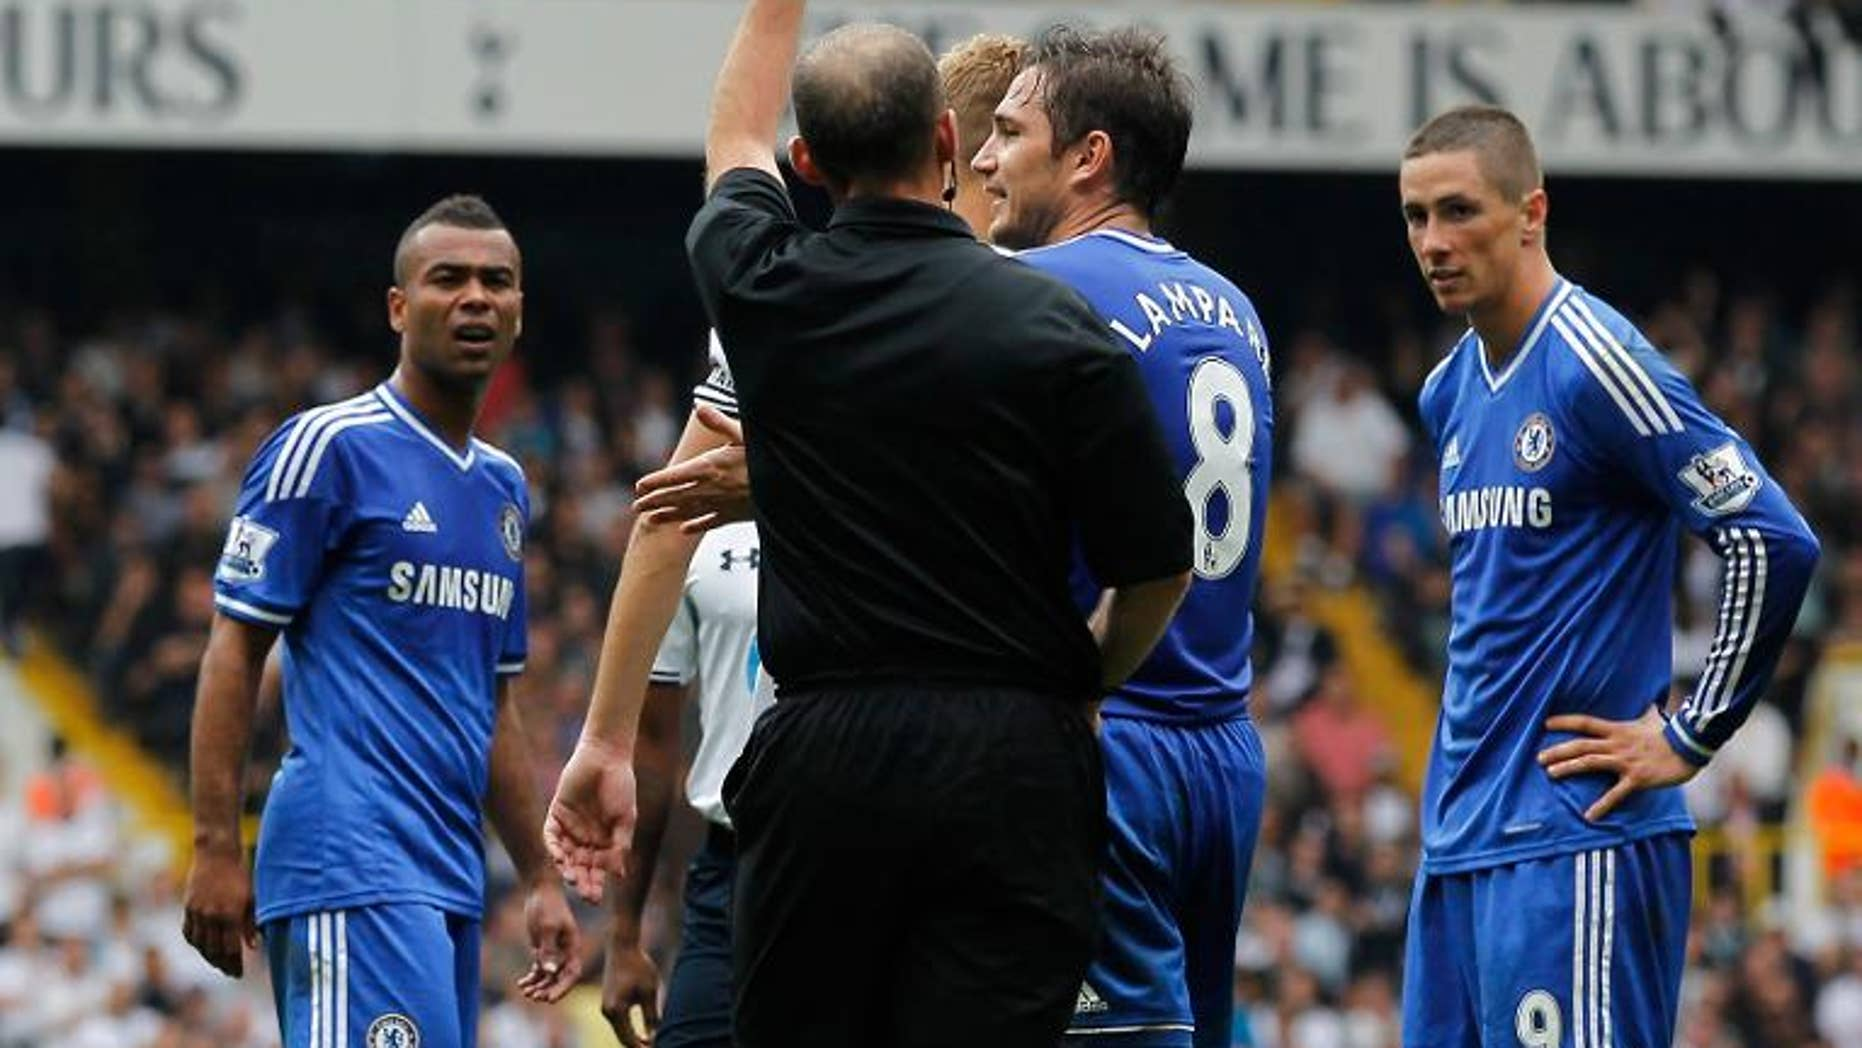 Chelsea's Spanish striker Fernando Torres (right) is shown the red card for a second bookable offence during a match with Tottenham Hotspur at White Hart Lane, September 28, 2013